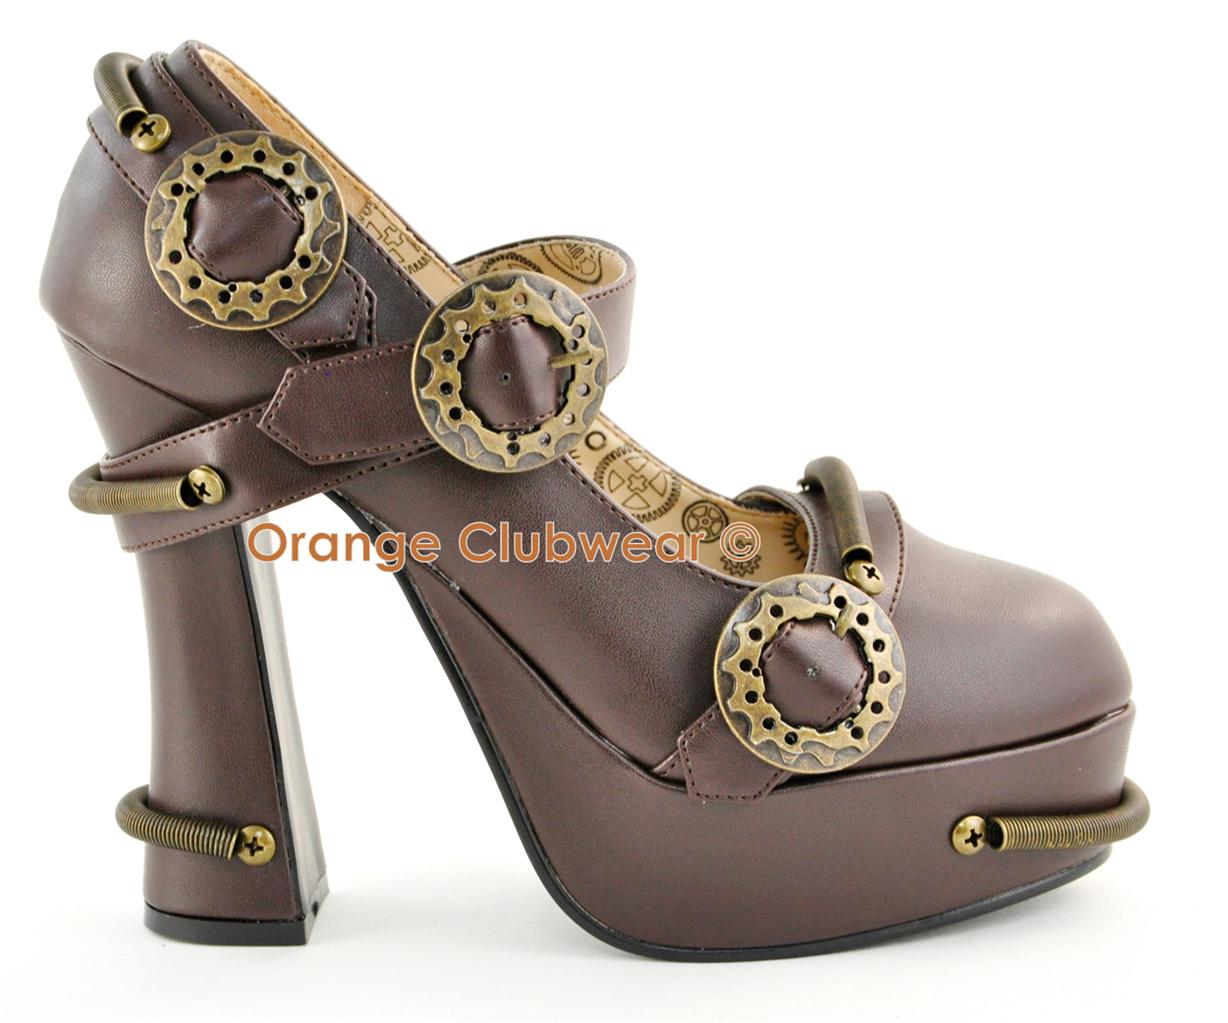 Details about DEMONIA Demon-29 Womens Steampunk Maryjanes Heels Shoes